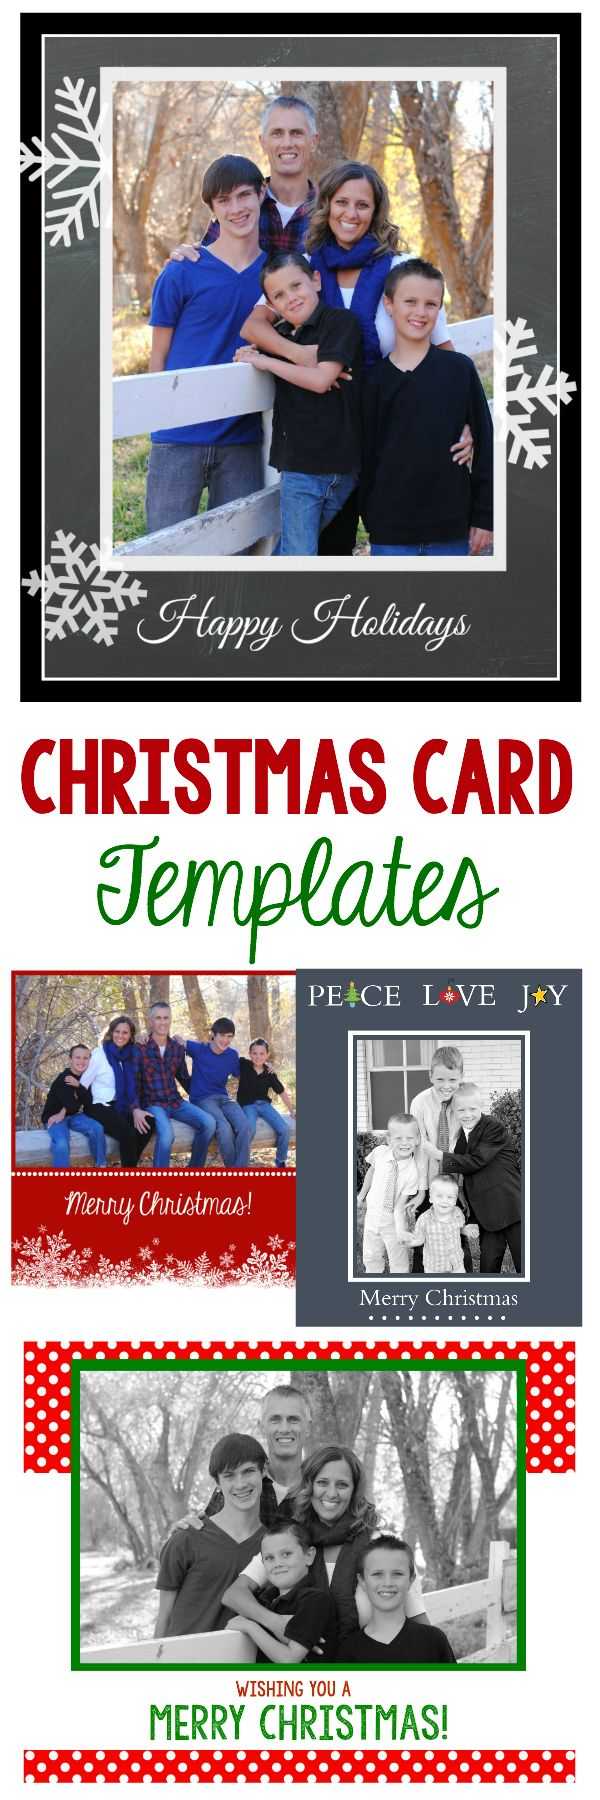 free christmas card templates add your own pictures to make them your own - Christmas Photo Card Templates